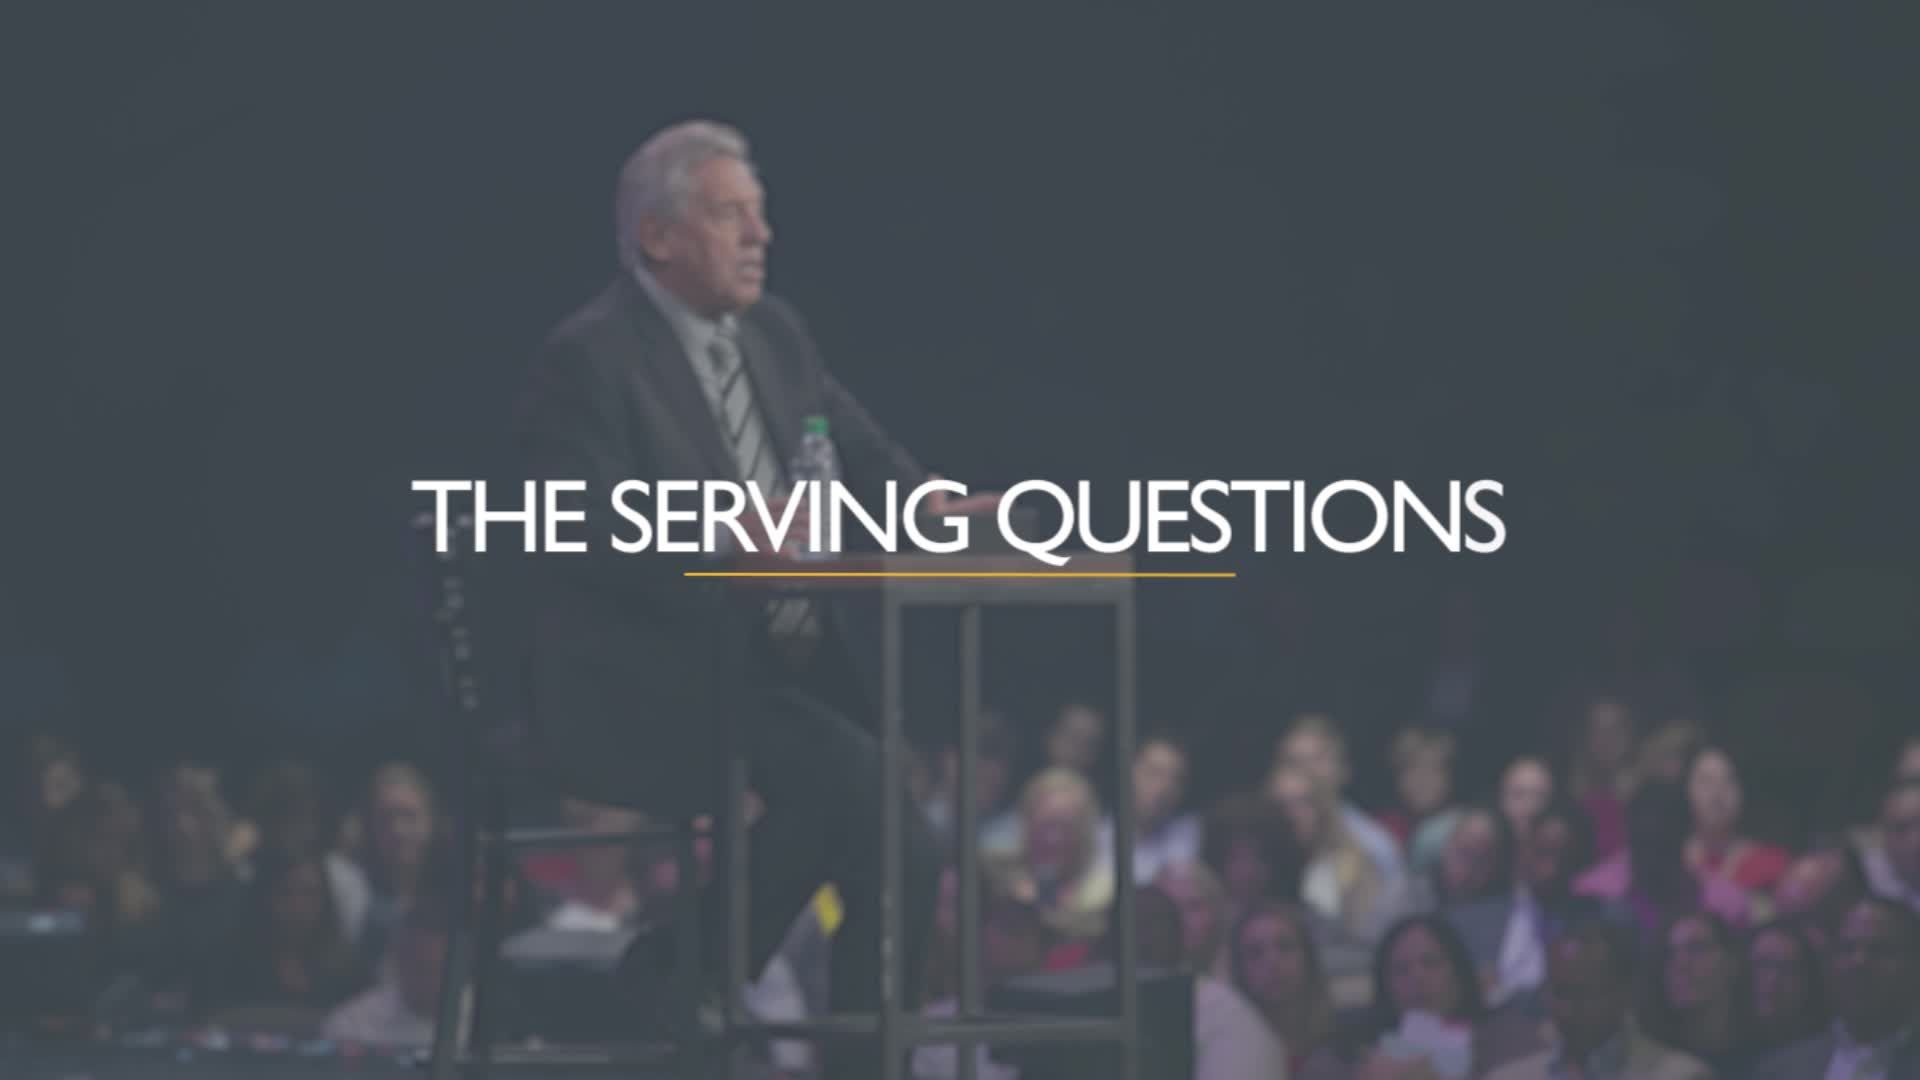 The Serving Questions